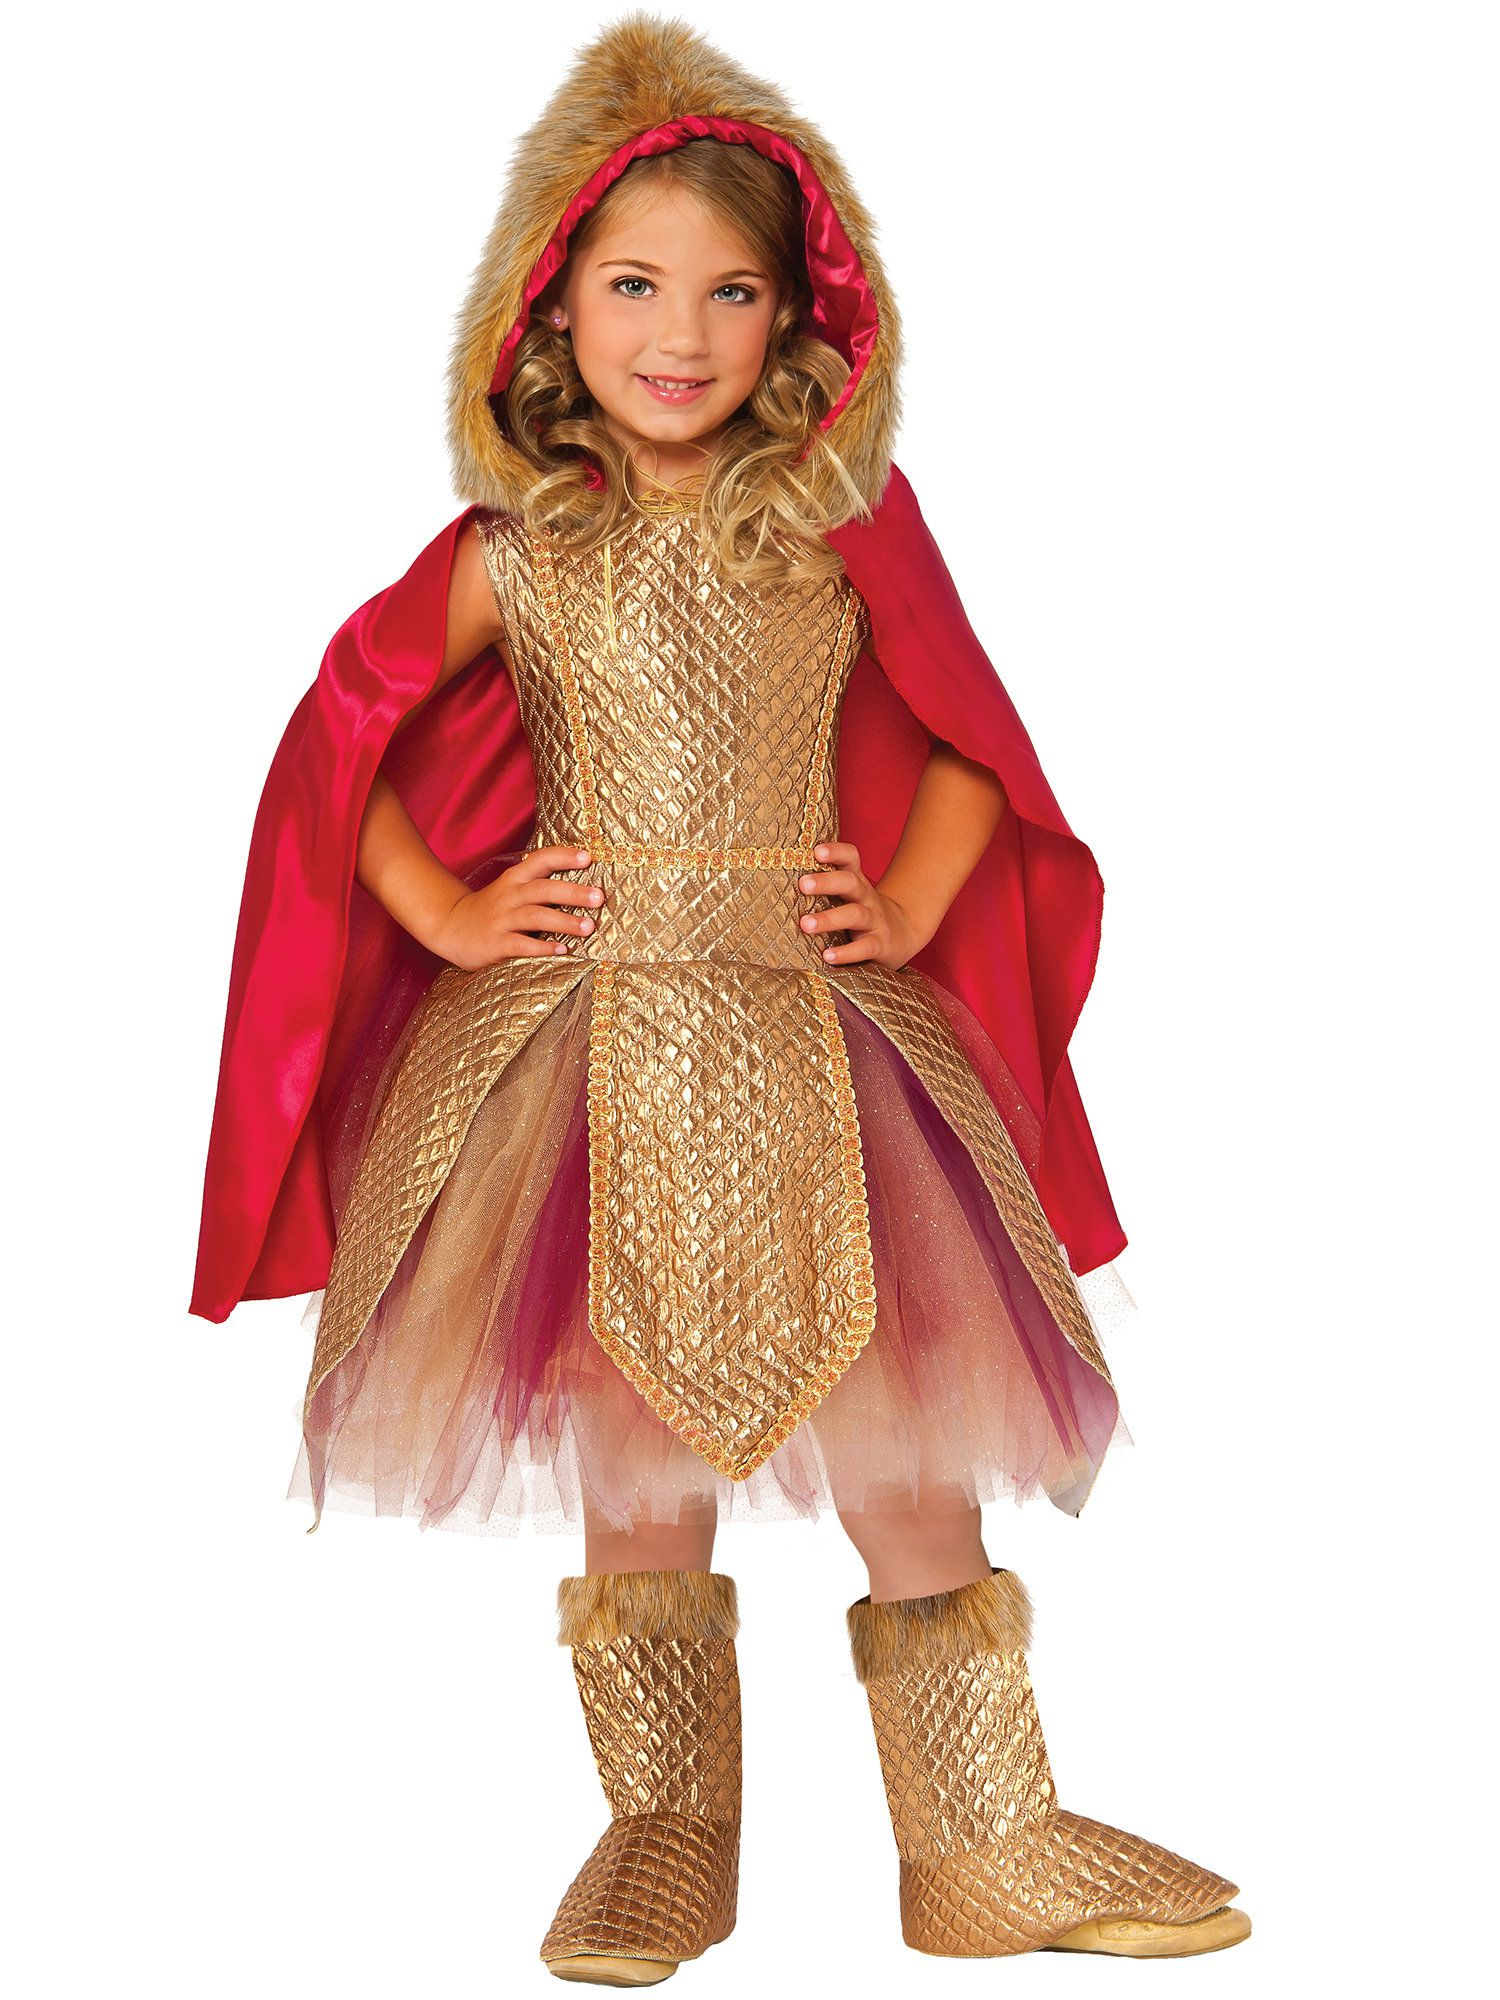 Warrior Princess Costume For Girls  sc 1 st  Wholesale Halloween Costumes & Kids Warrior Princess Costume | Medieval Renaissance Costumes at ...